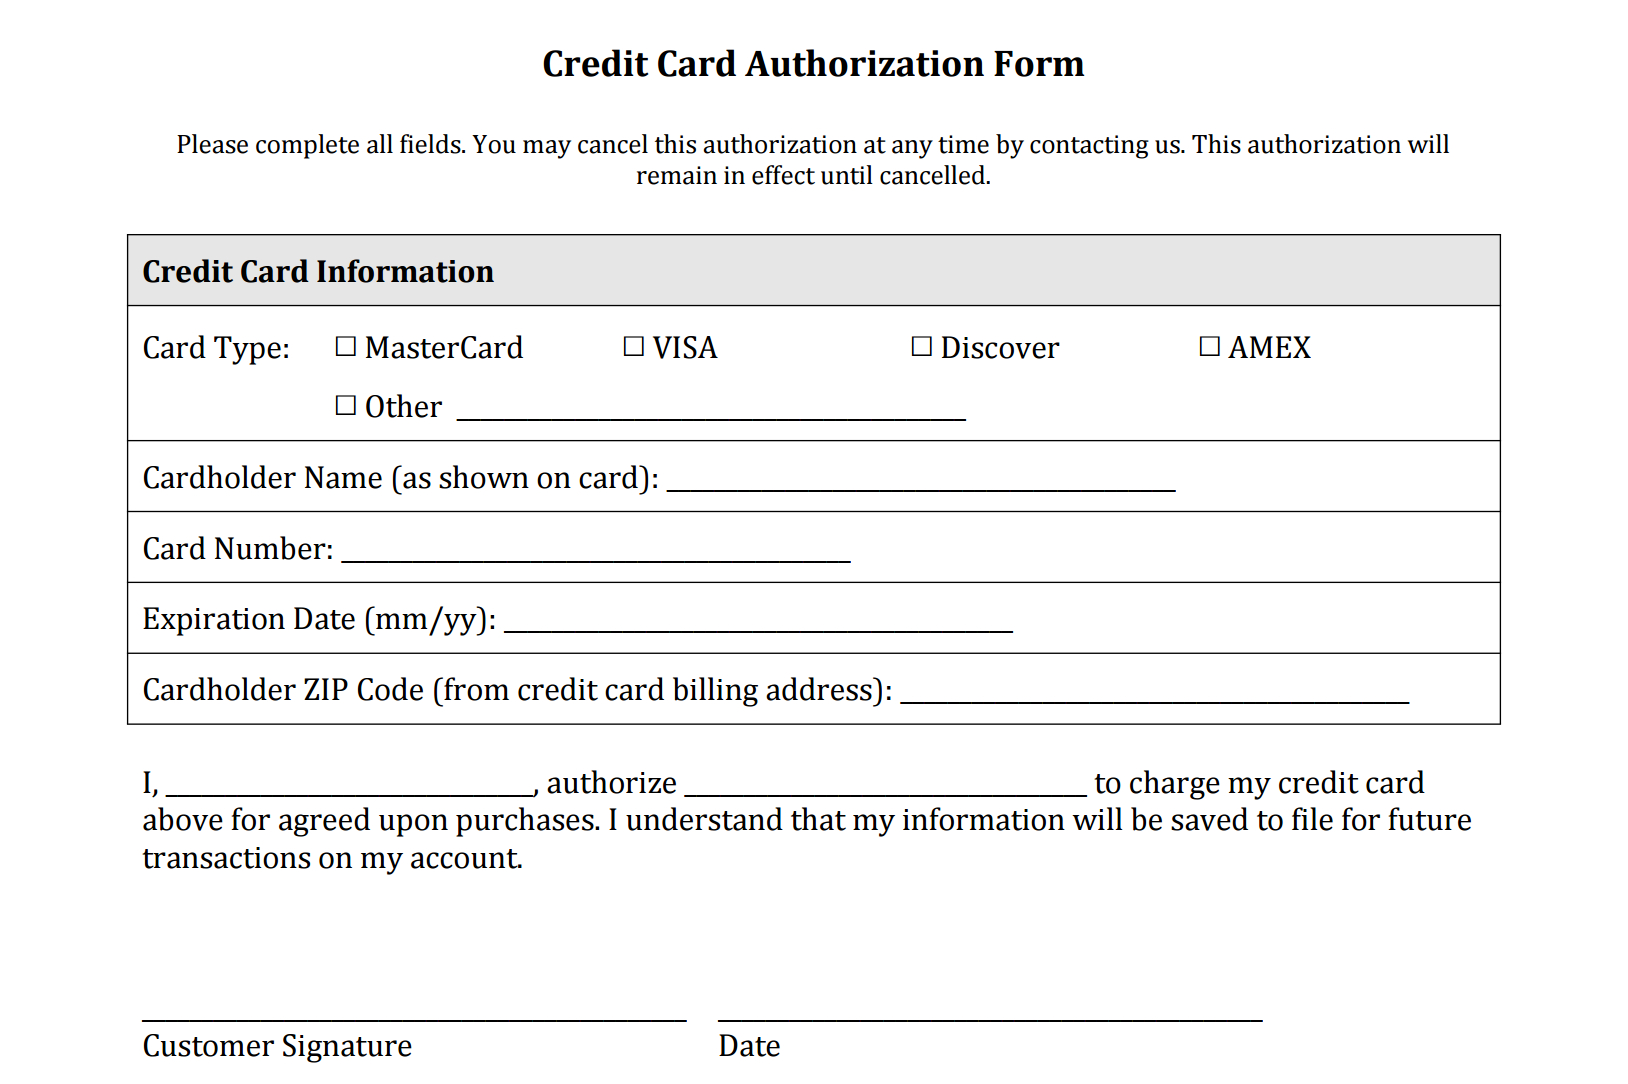 001 Credit Card Authorization Form Template Ideas Surprising Intended For Credit Card Authorization Form Template Word